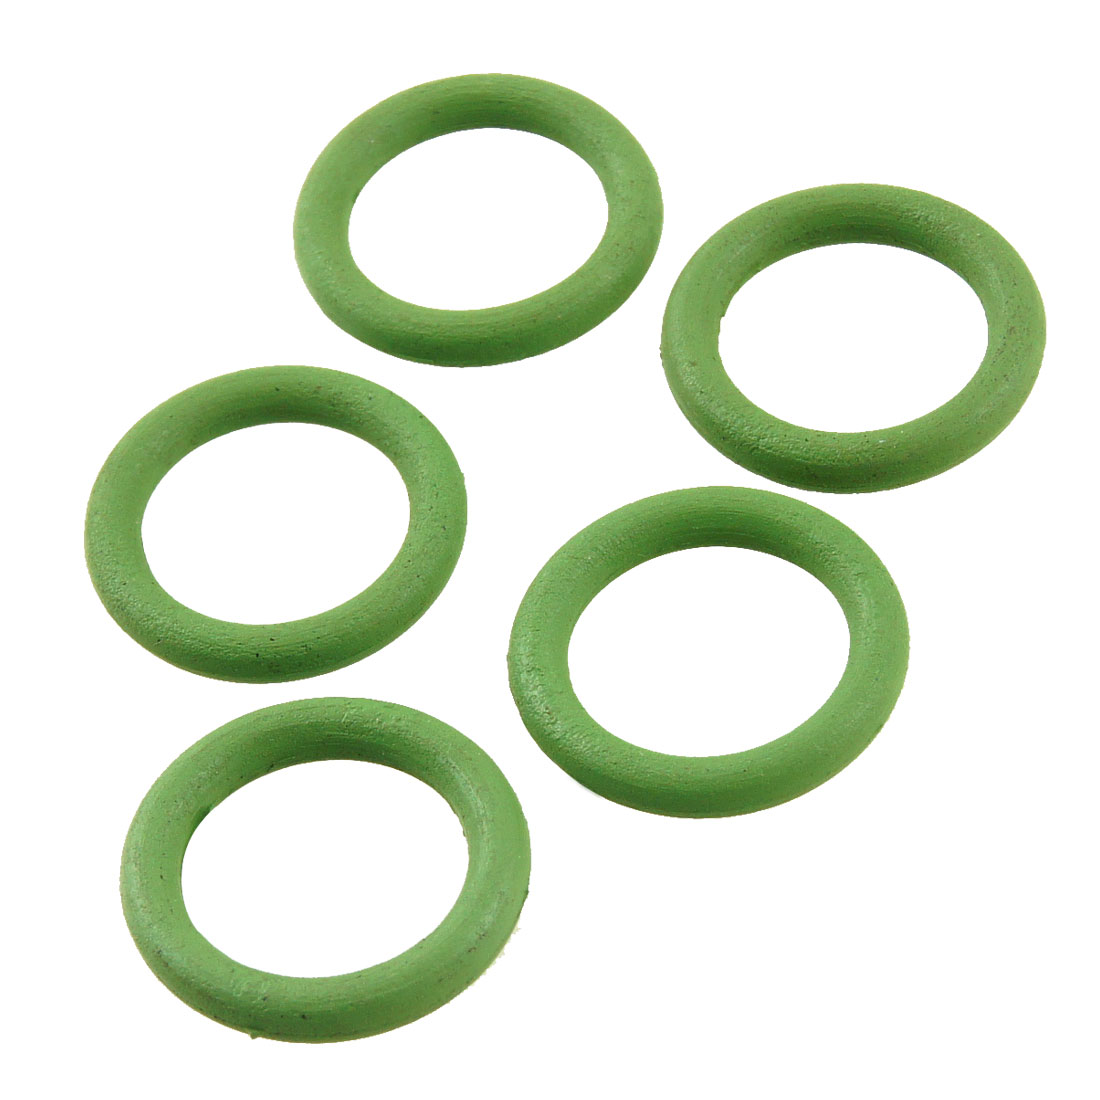 20mm Outside Dia. Mechanical Rubber O Ring Oil Seal Gaskets 5 Pcs